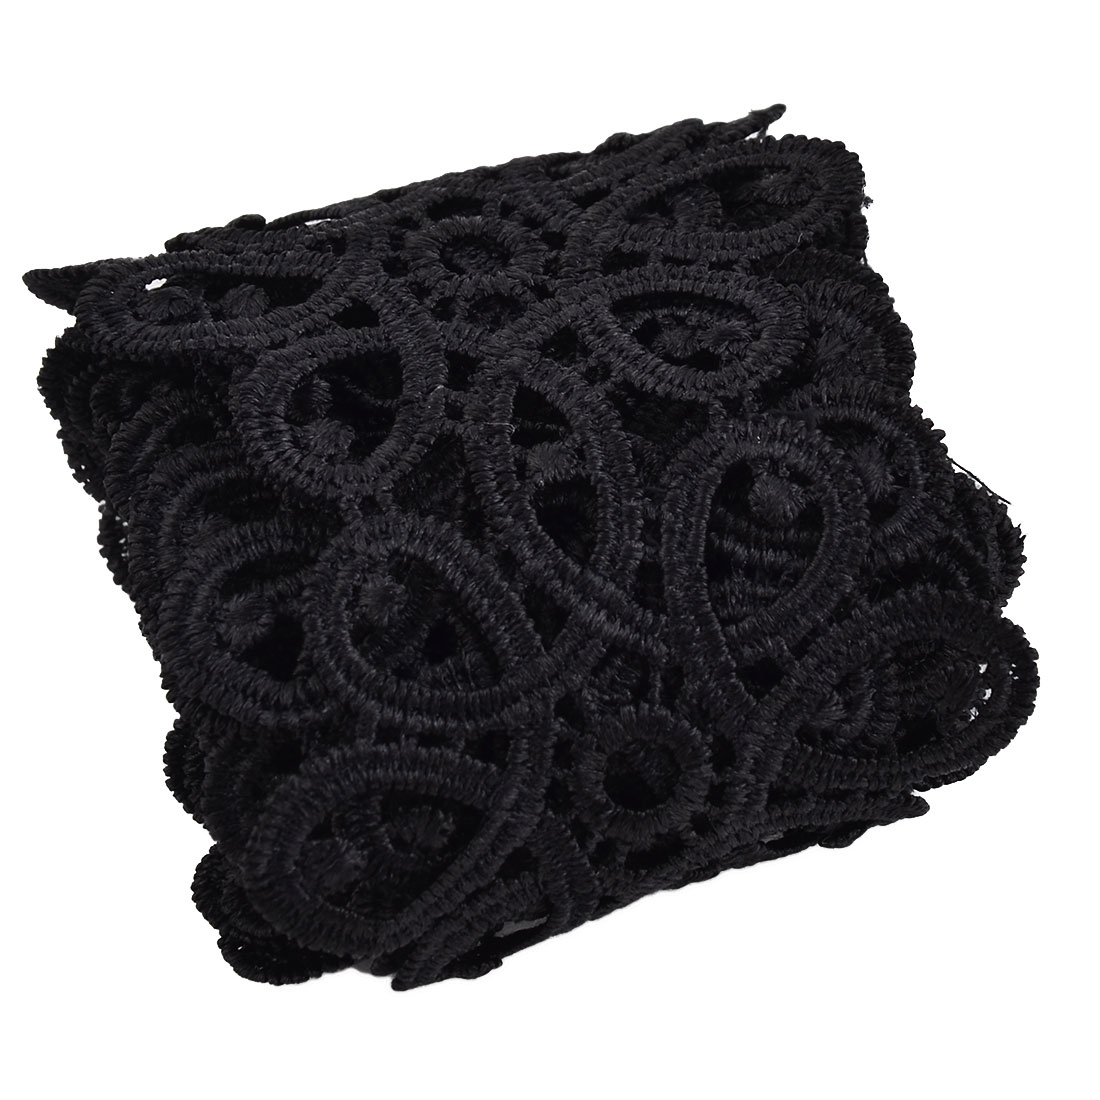 Party Polyester Hollow Out DIY Craft Sewing Lace Trim Applique Black 2.2 Yards